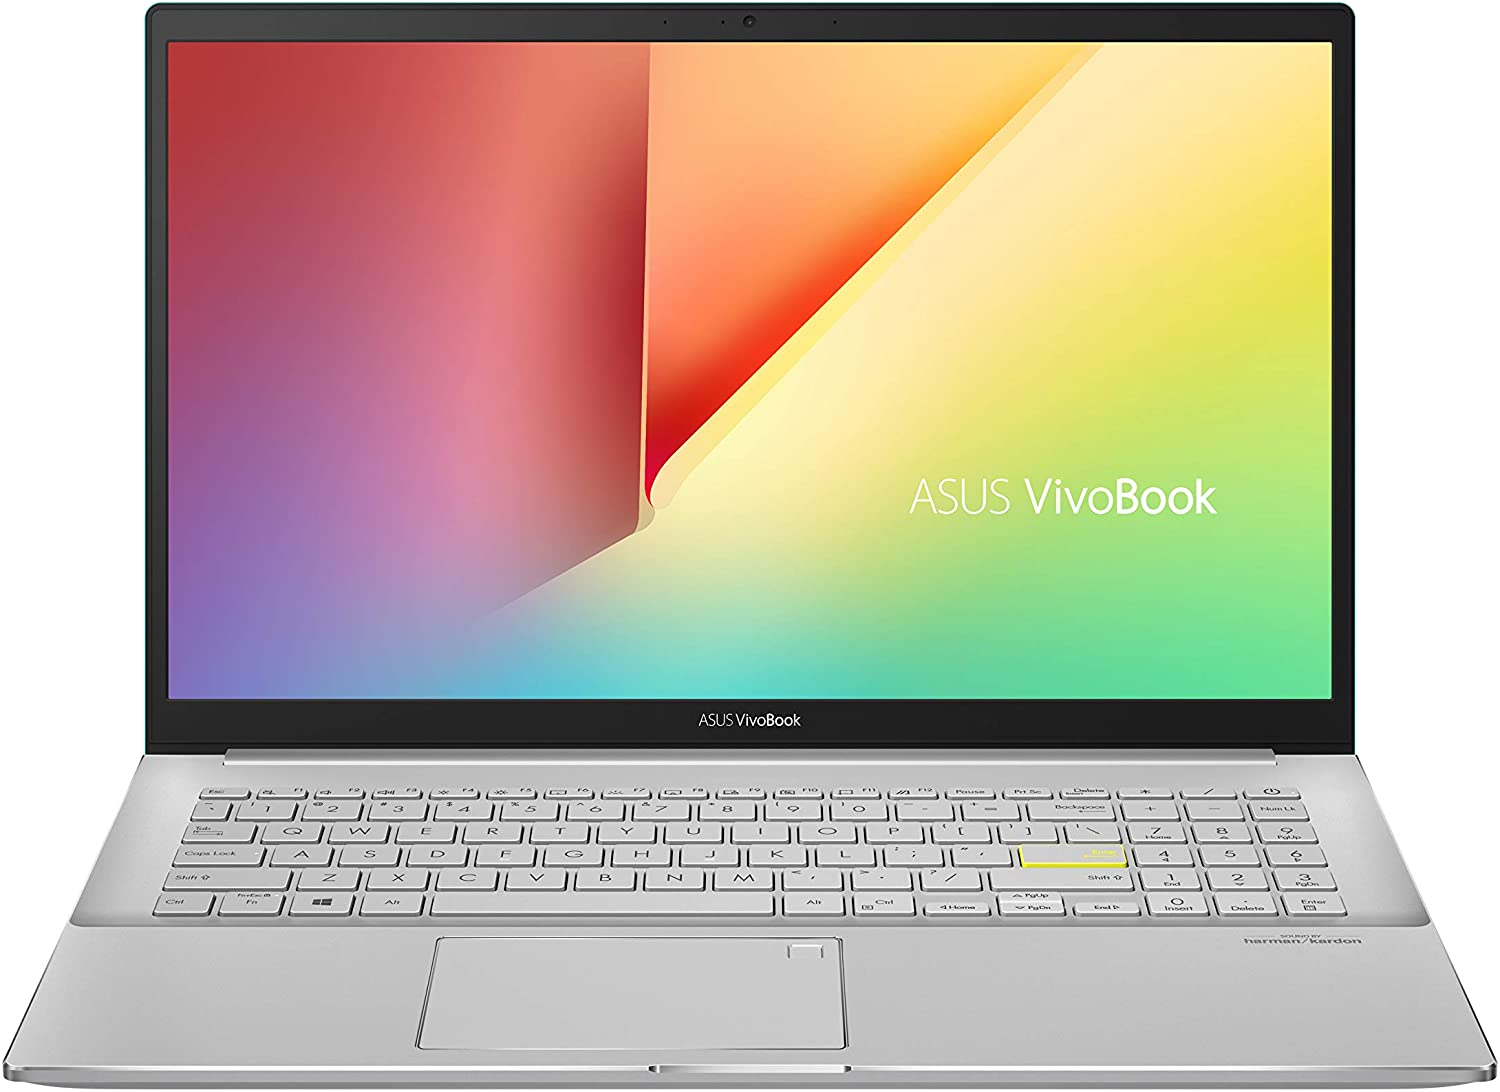 9 Best Laptops For Programming in 2021 [Expert Recommendations]